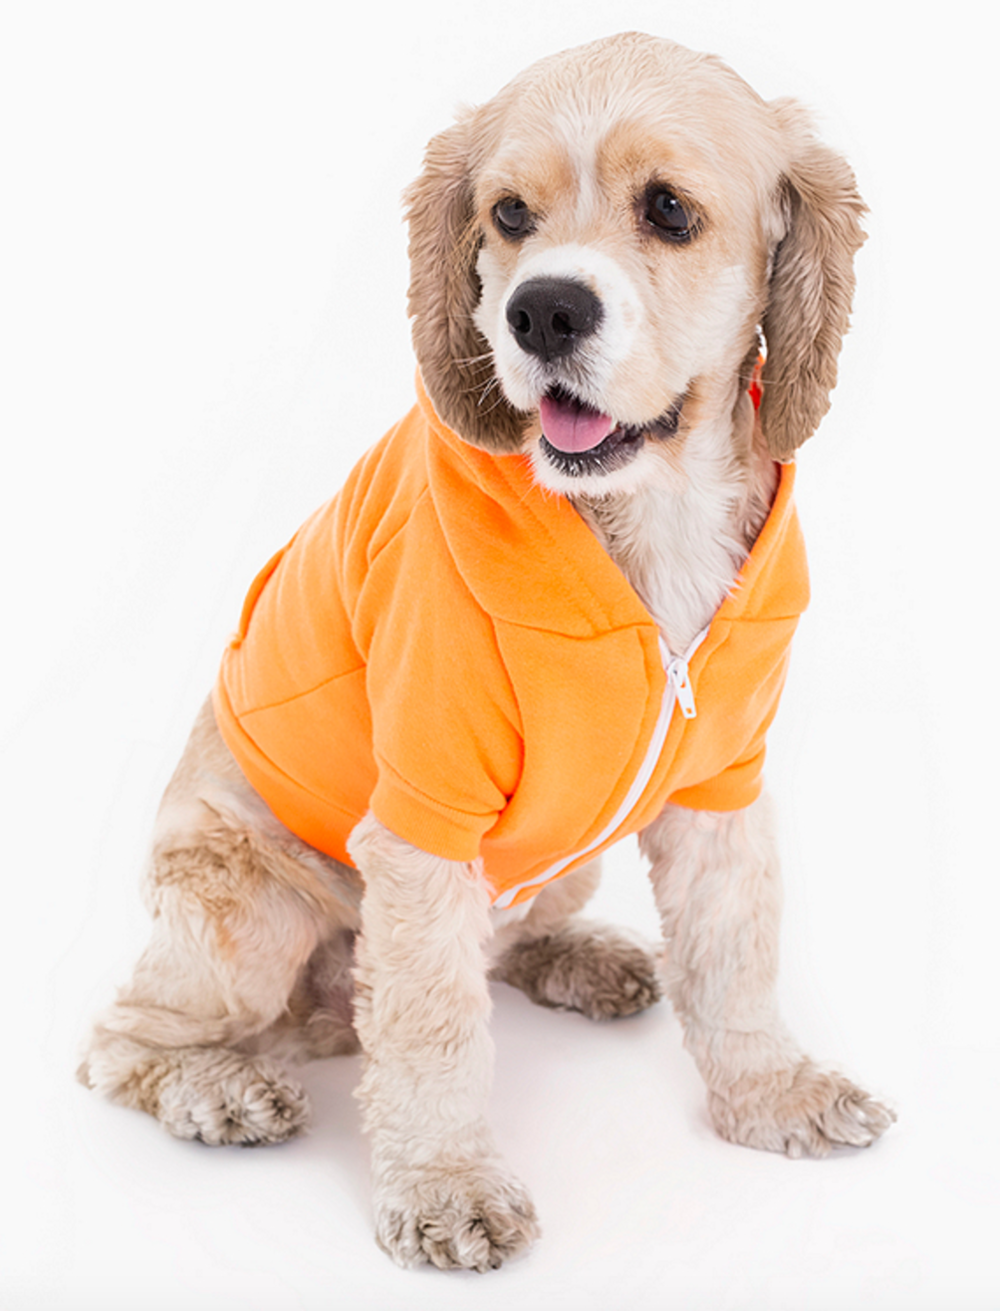 Flex Fleece Dog Zip Hoodie $17 / Their dog hoodies are to die for and make great gifts!